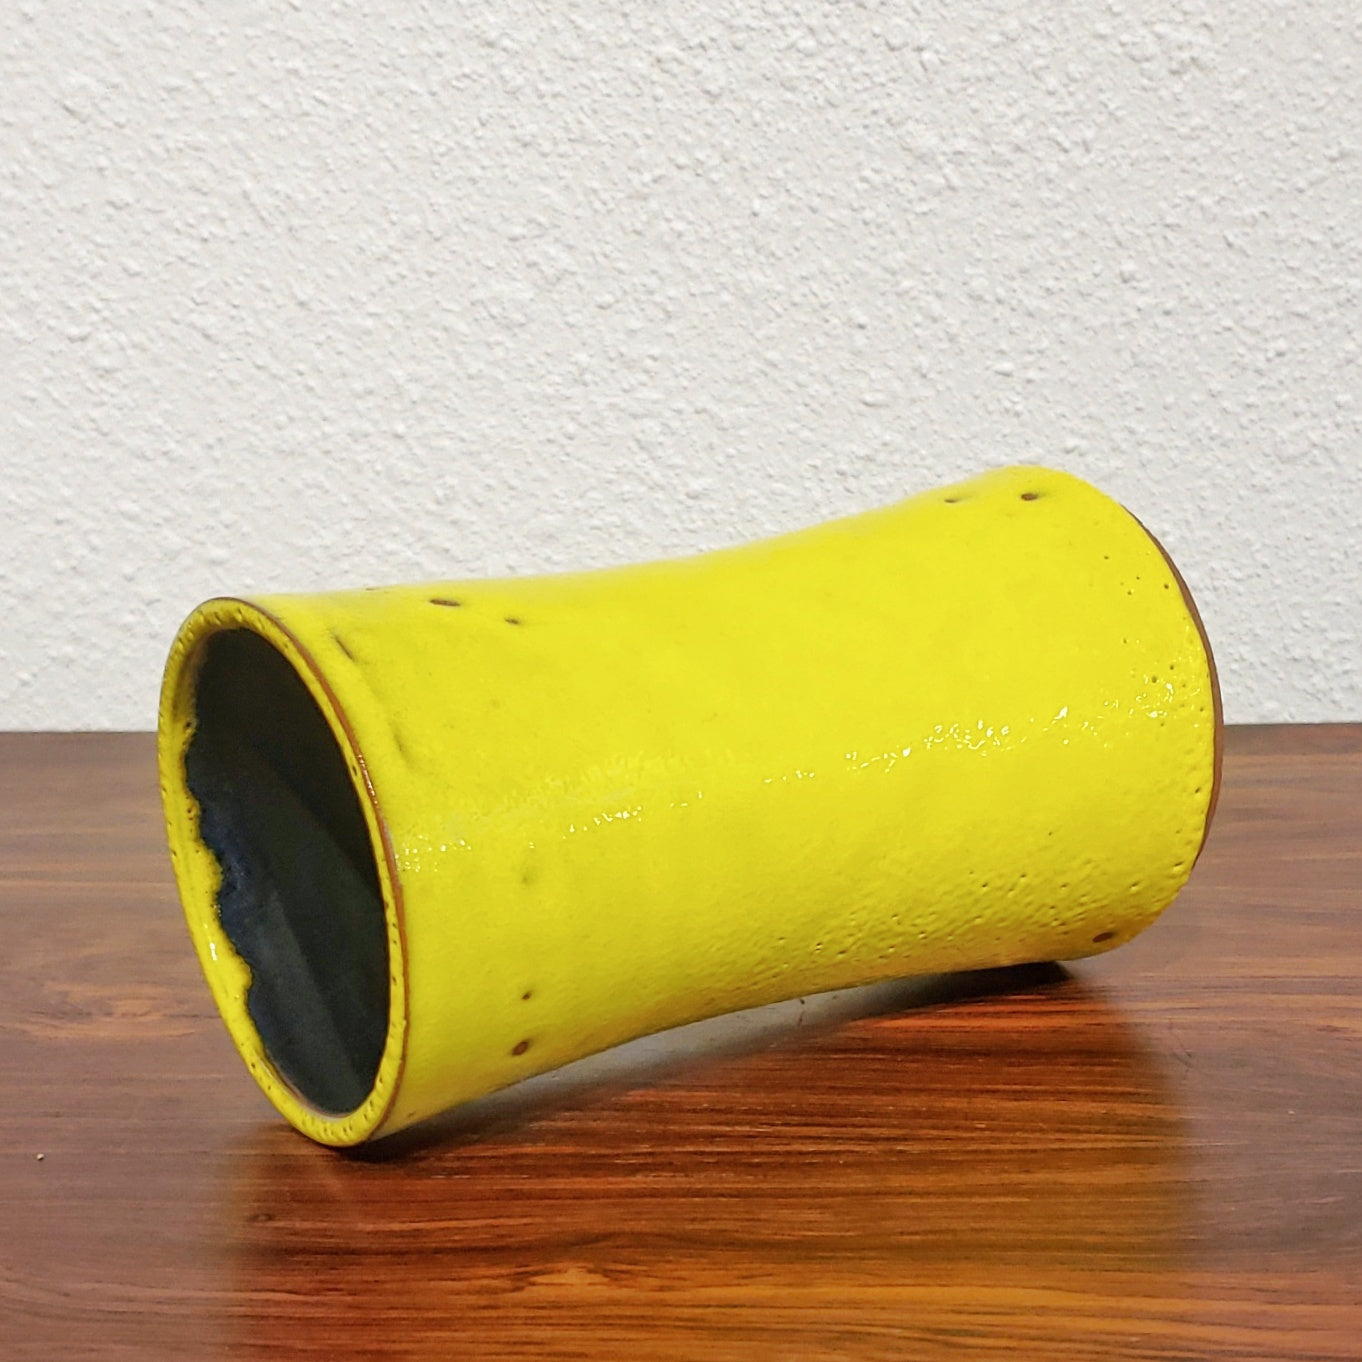 ACID YELLOW GRAMANN RÖMHILD VASE